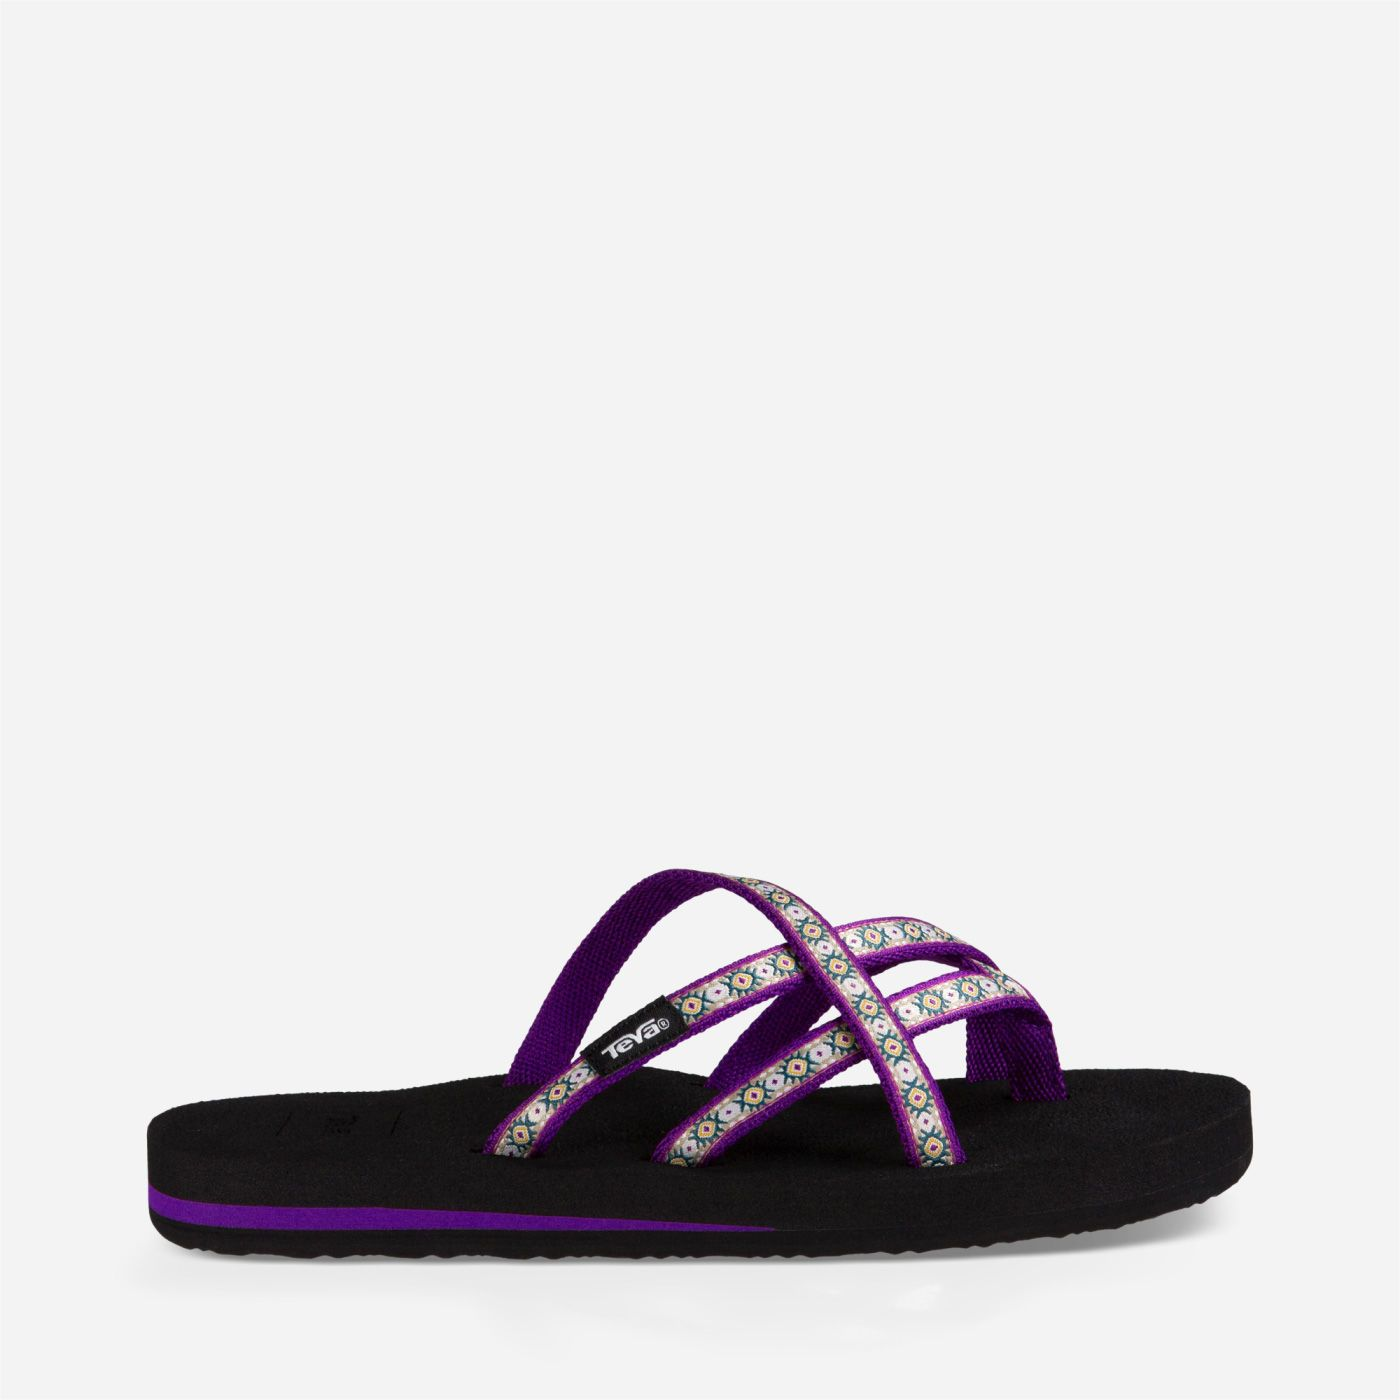 Shop women's footwear on the official Teva® site for the Olowahu Women's Flip Flops and get free shipping & returns on all Teva.com orders.